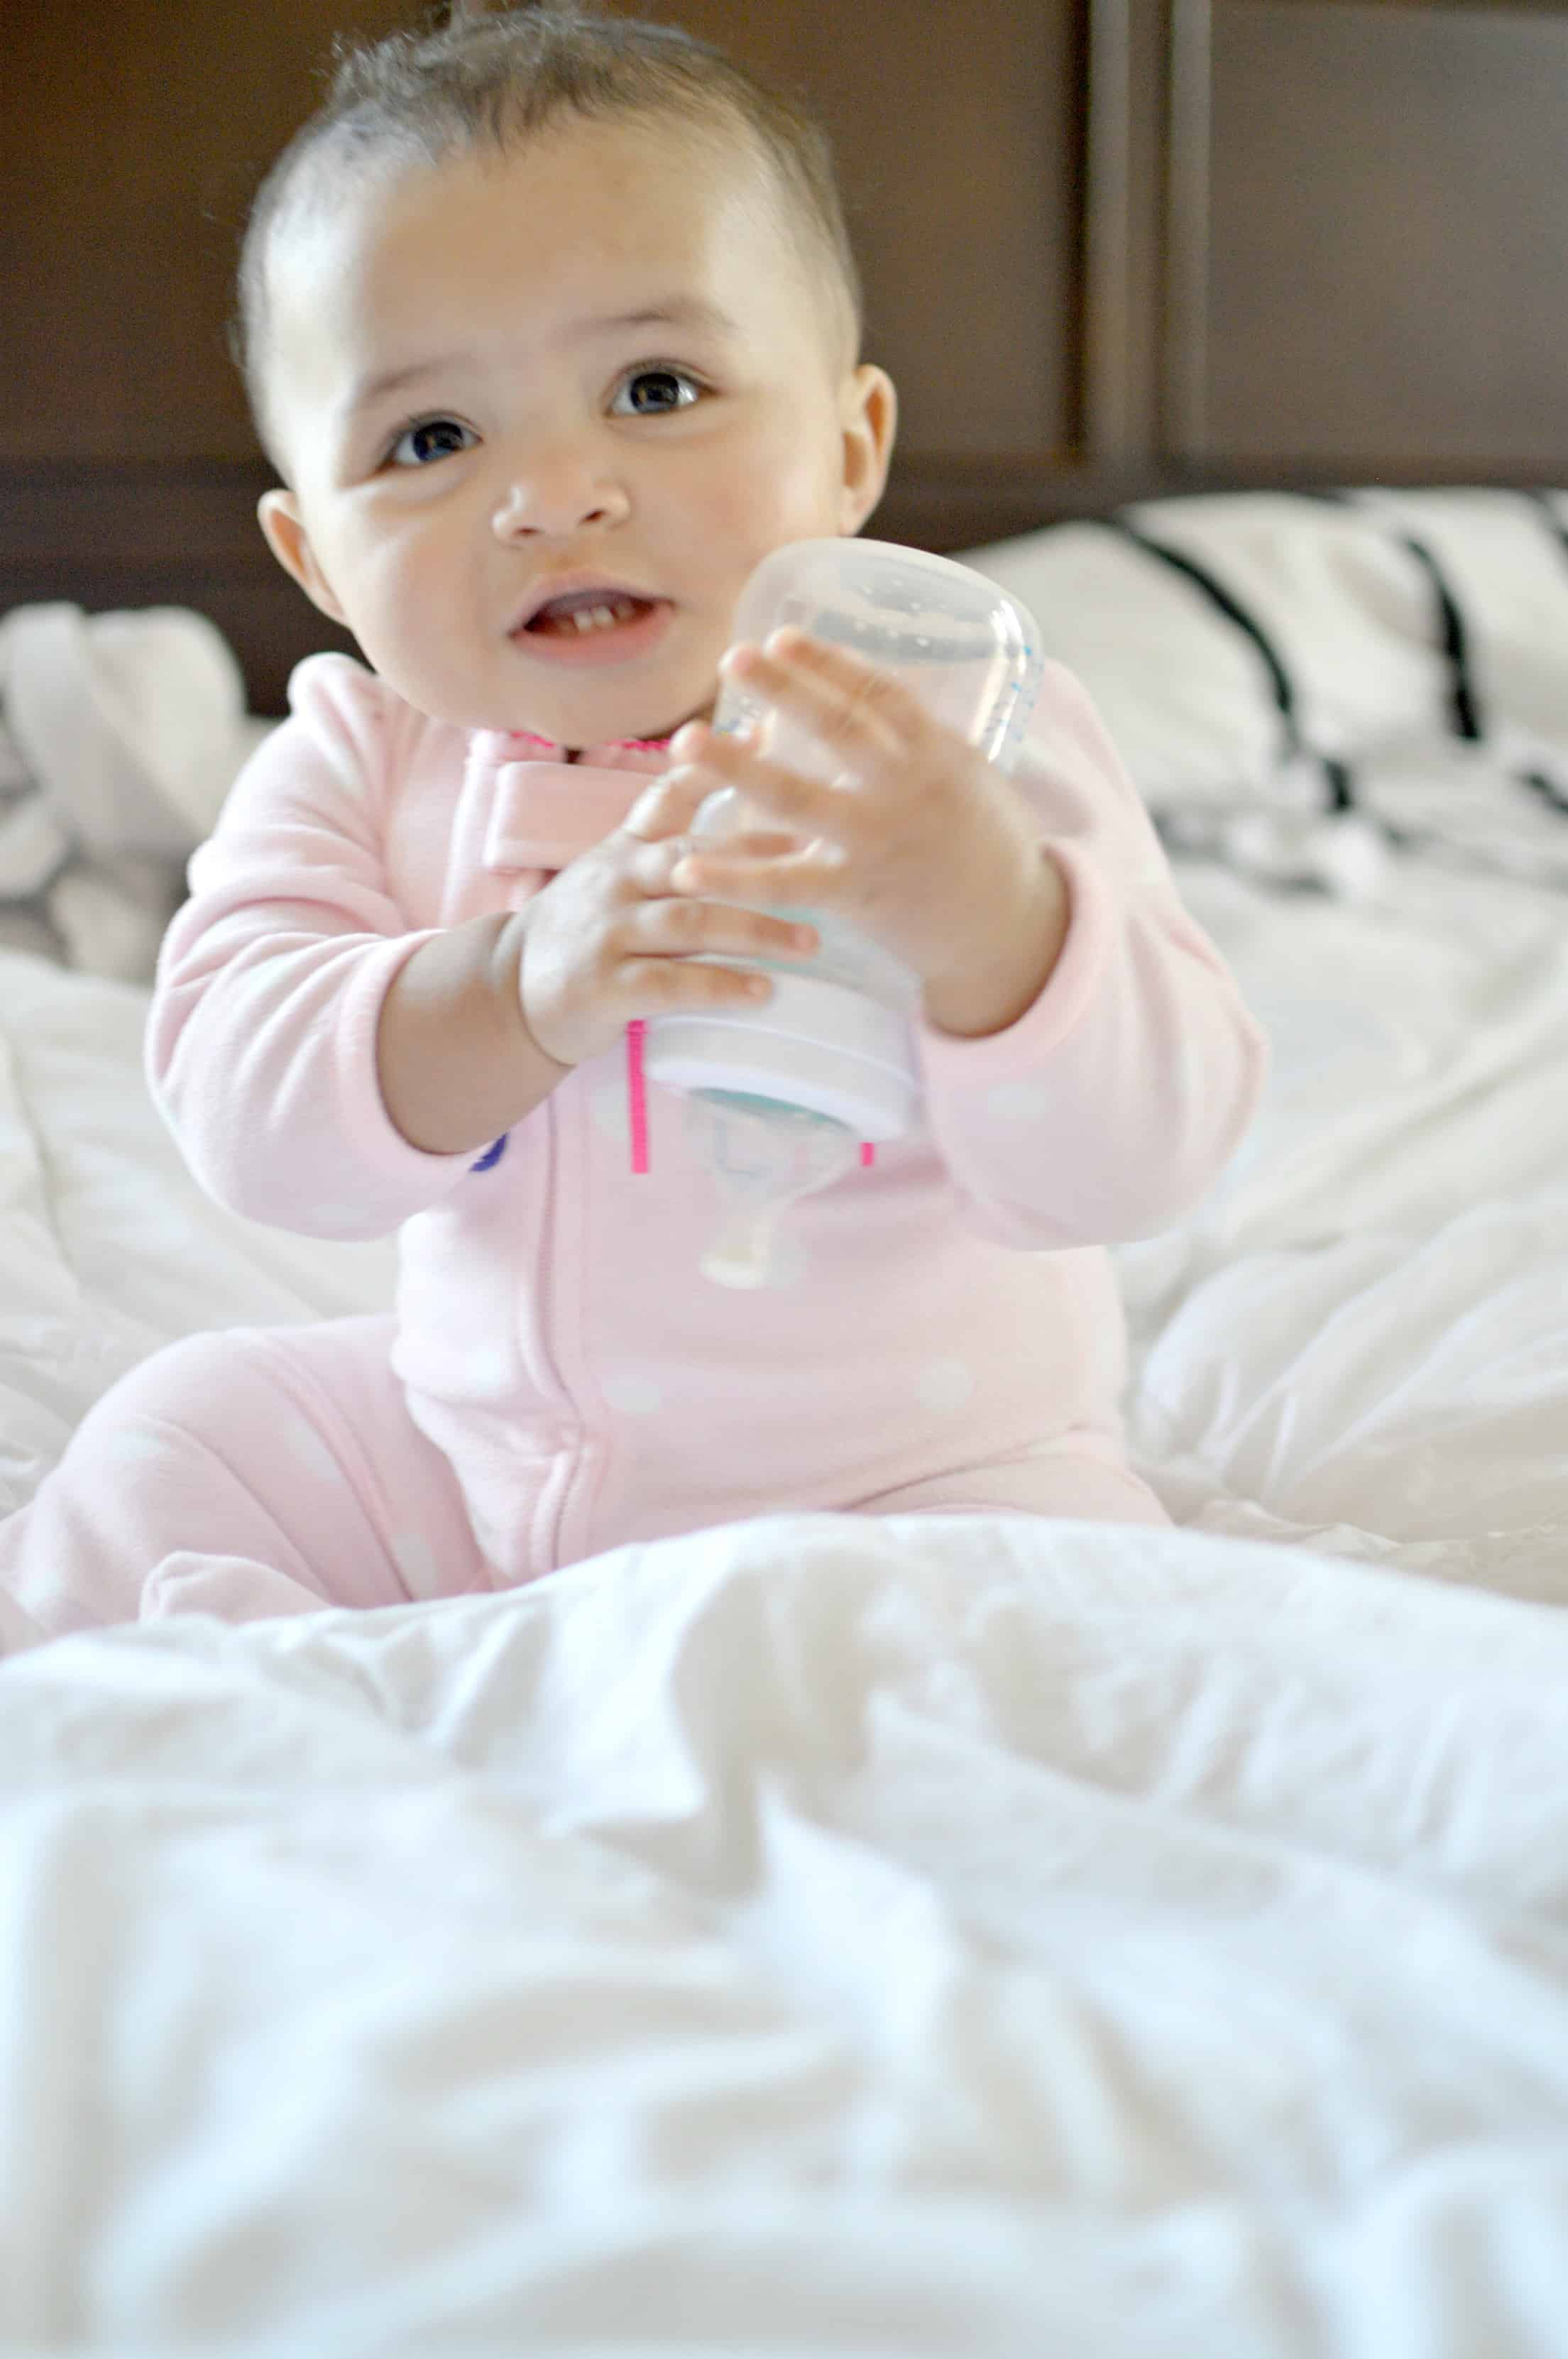 Philips Avent New All-in-One Anti-Colic Baby Bottle